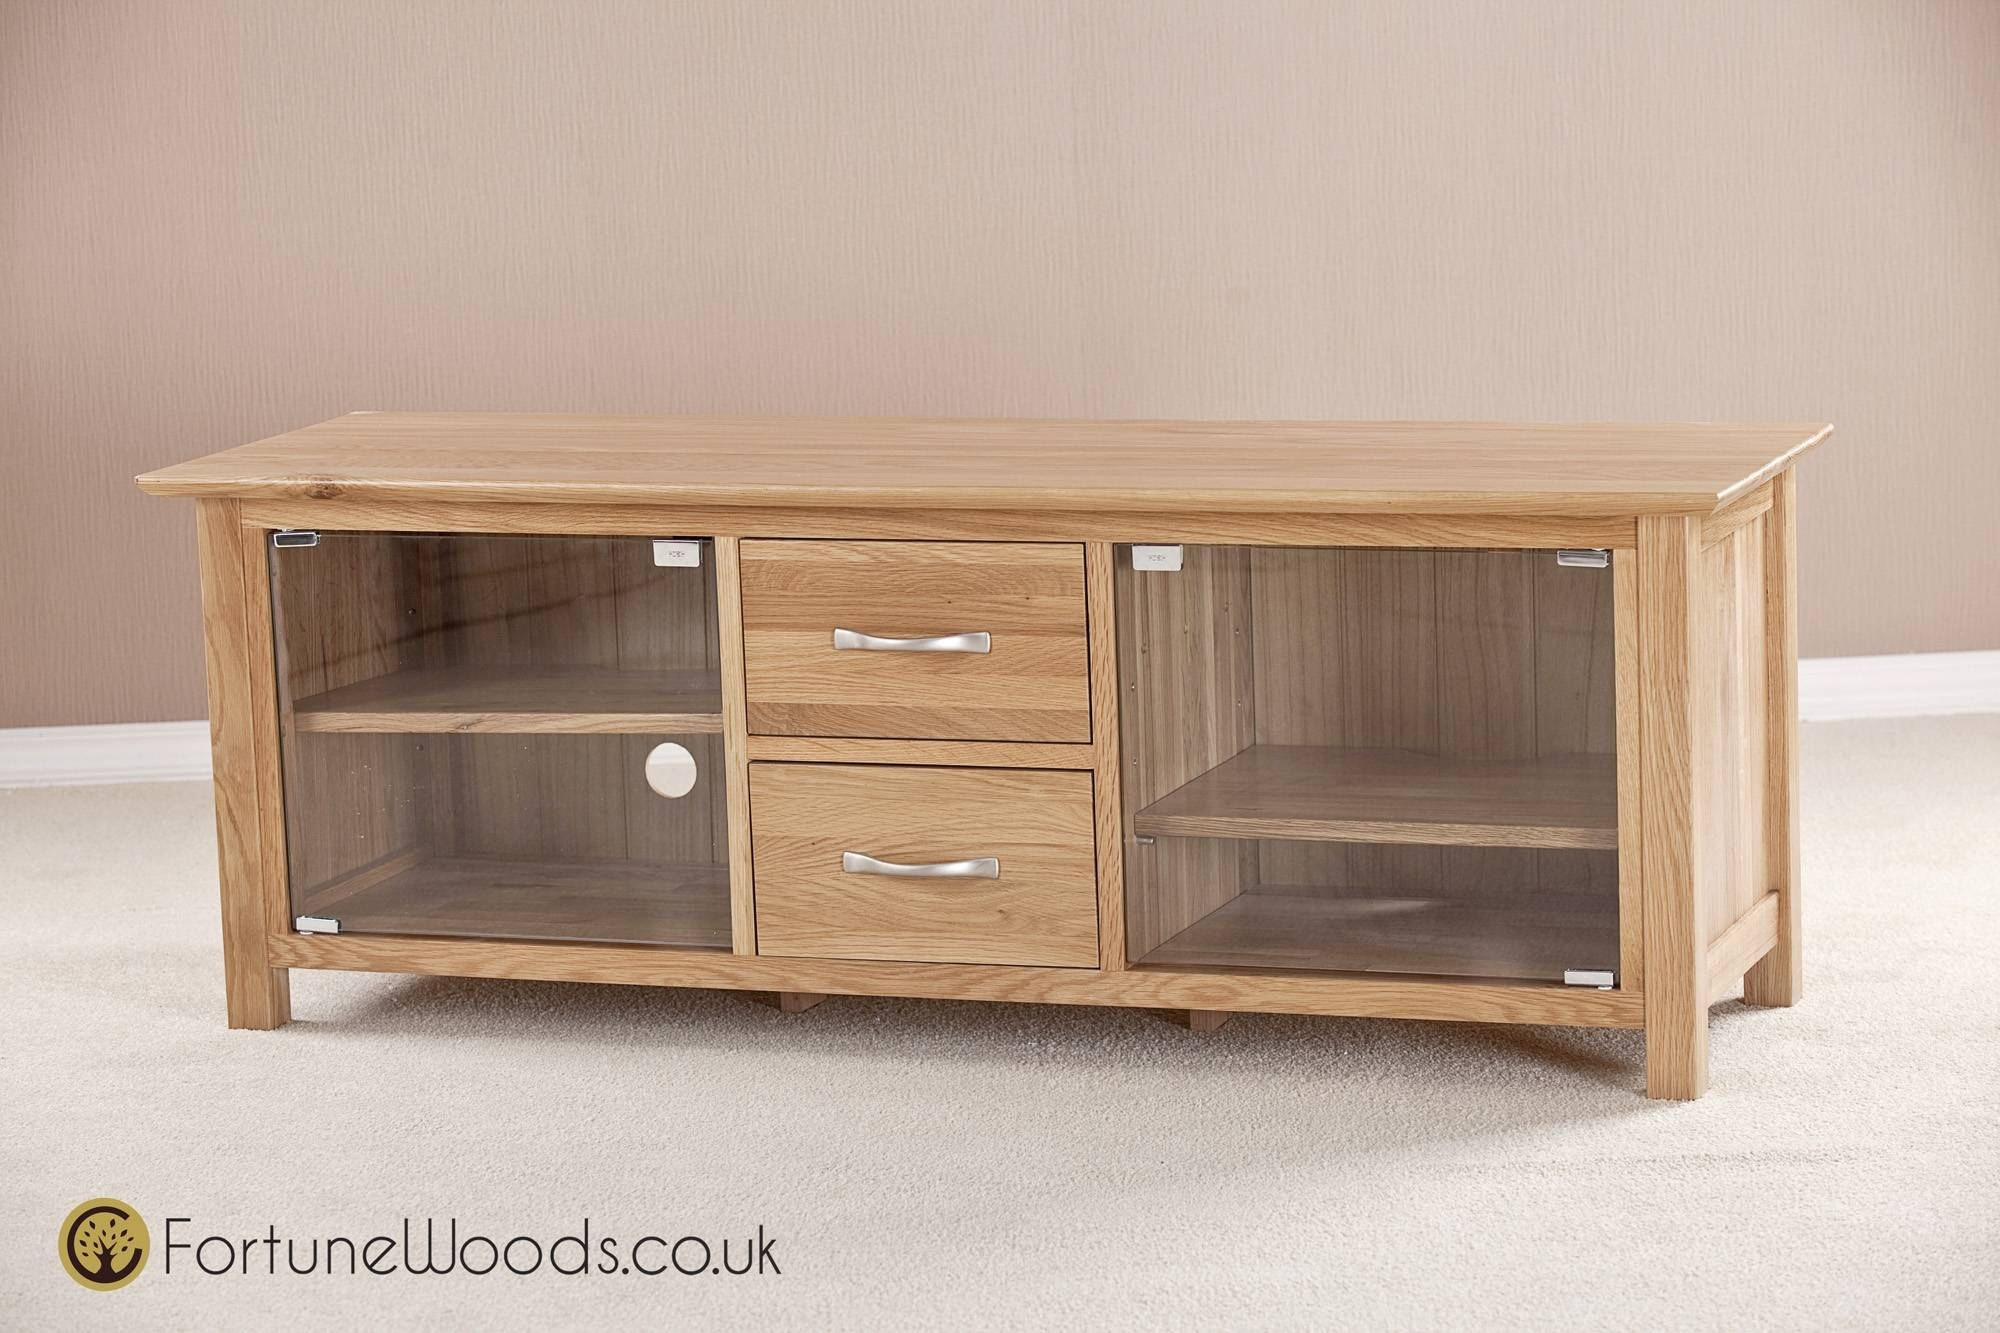 Large Oak Tv Unit With Glass Doors Throughout Sideboards With Glass Doors And Drawers (View 7 of 15)